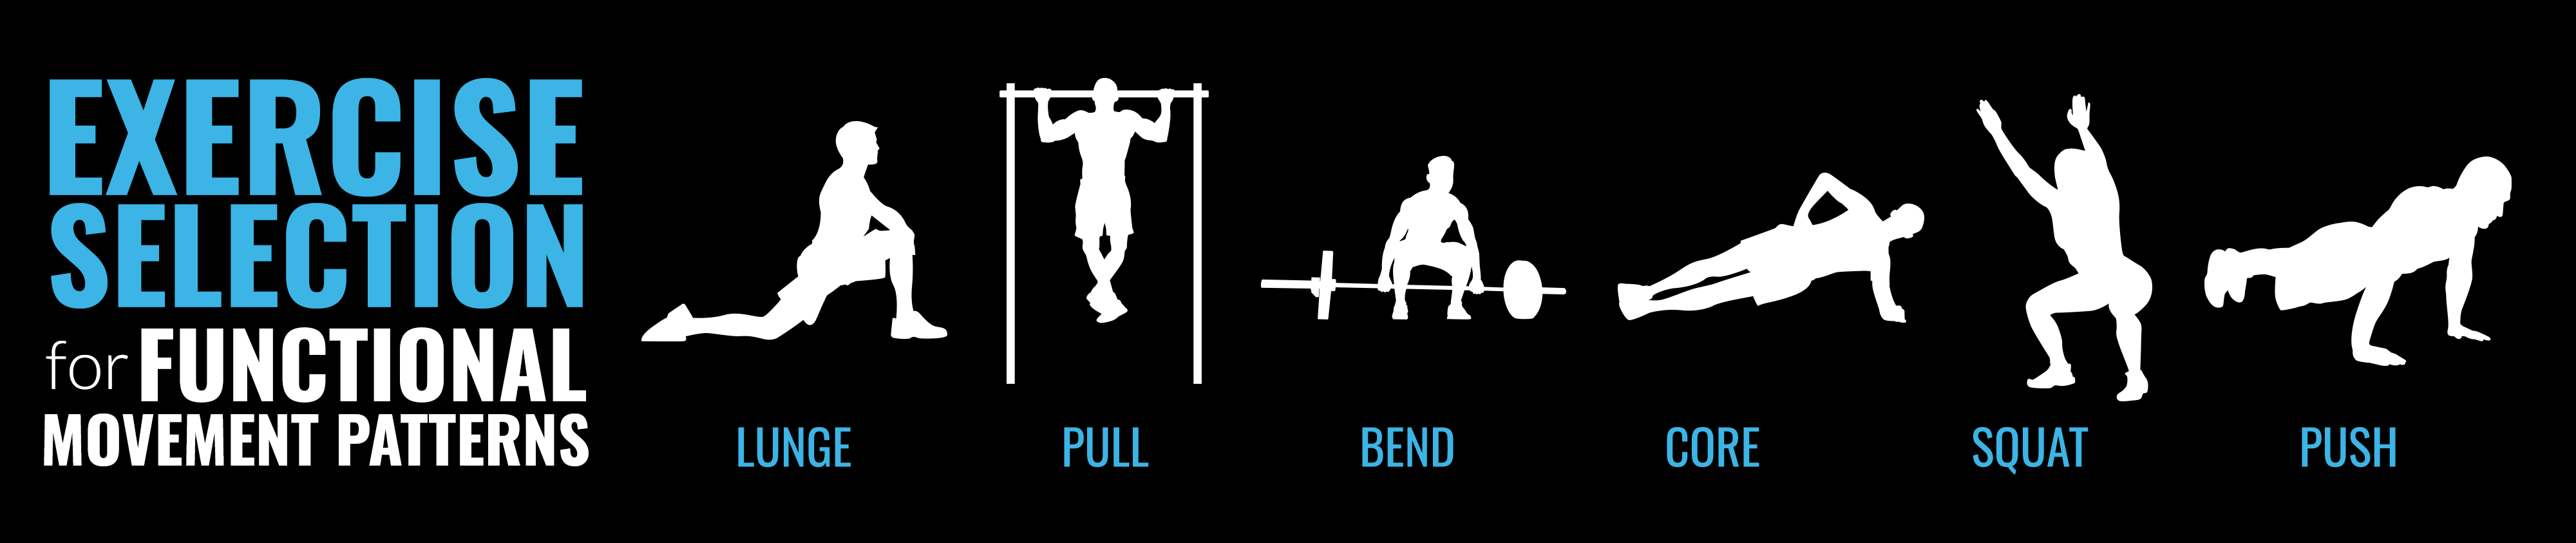 Exercise Selection Movement Patterns